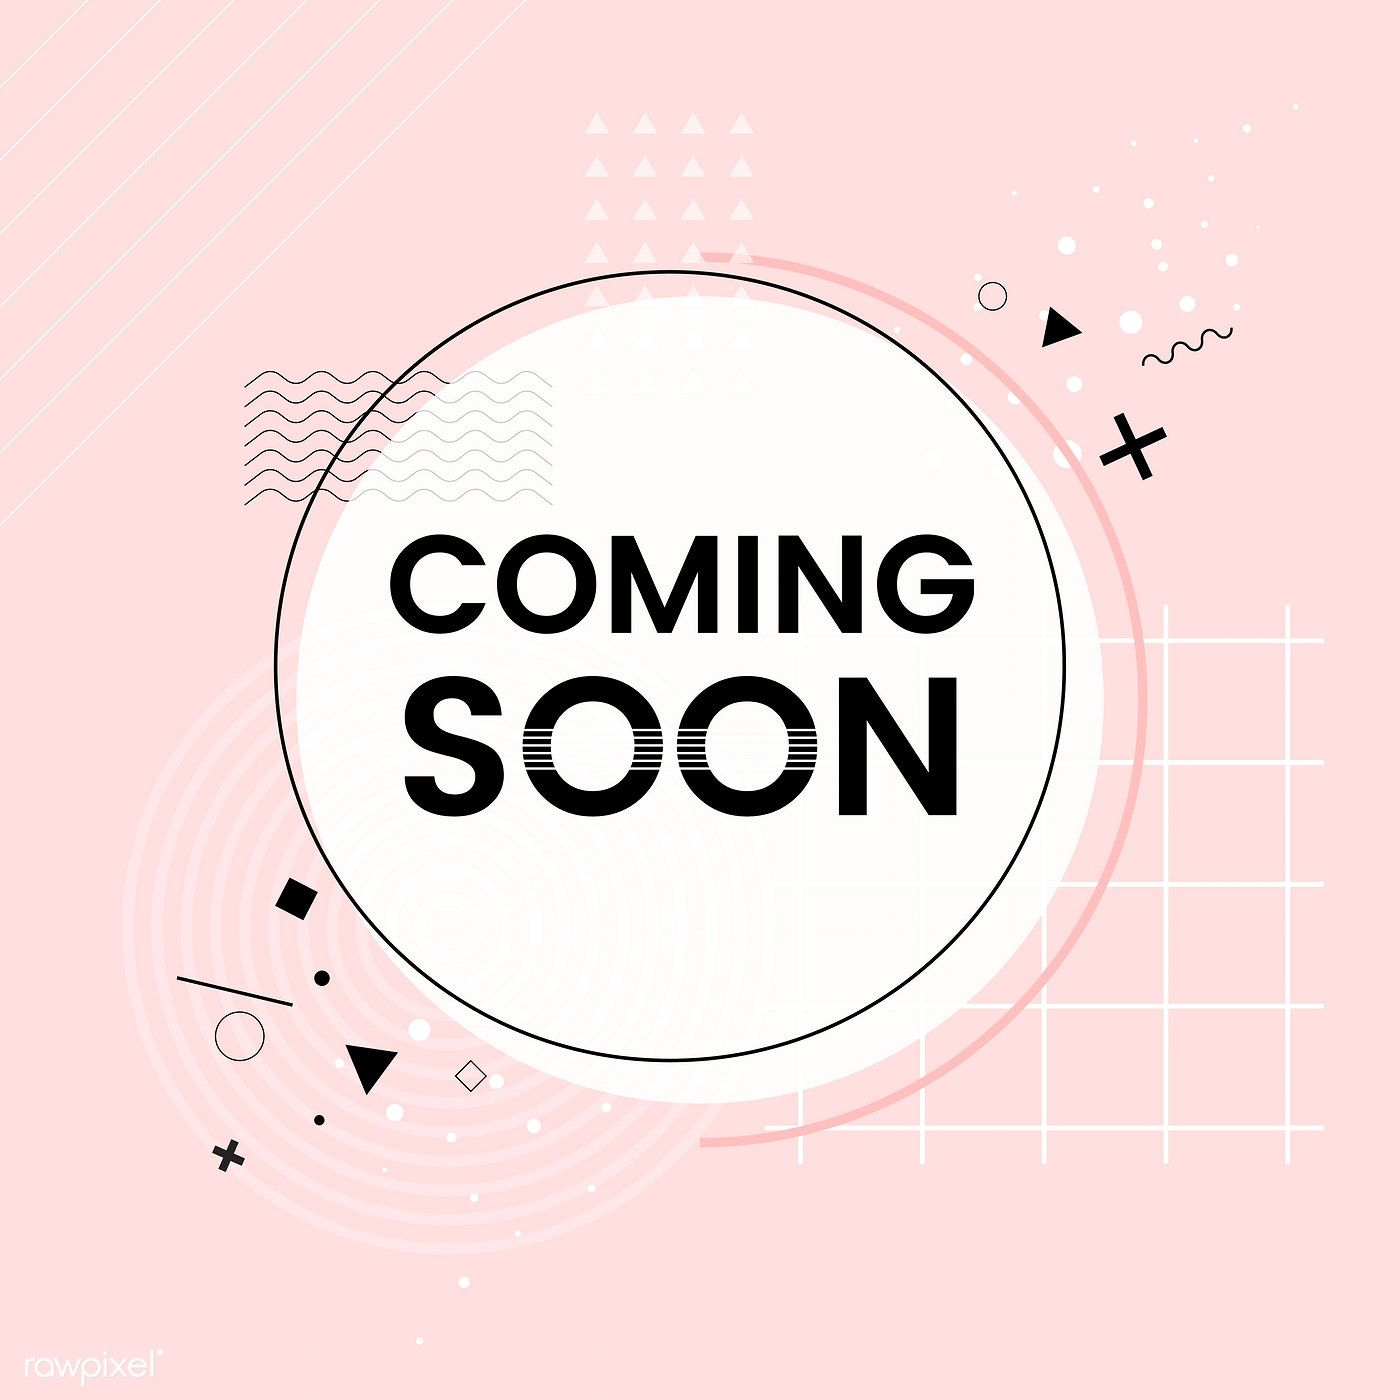 Coming soon shop announcement vector | free image by ...